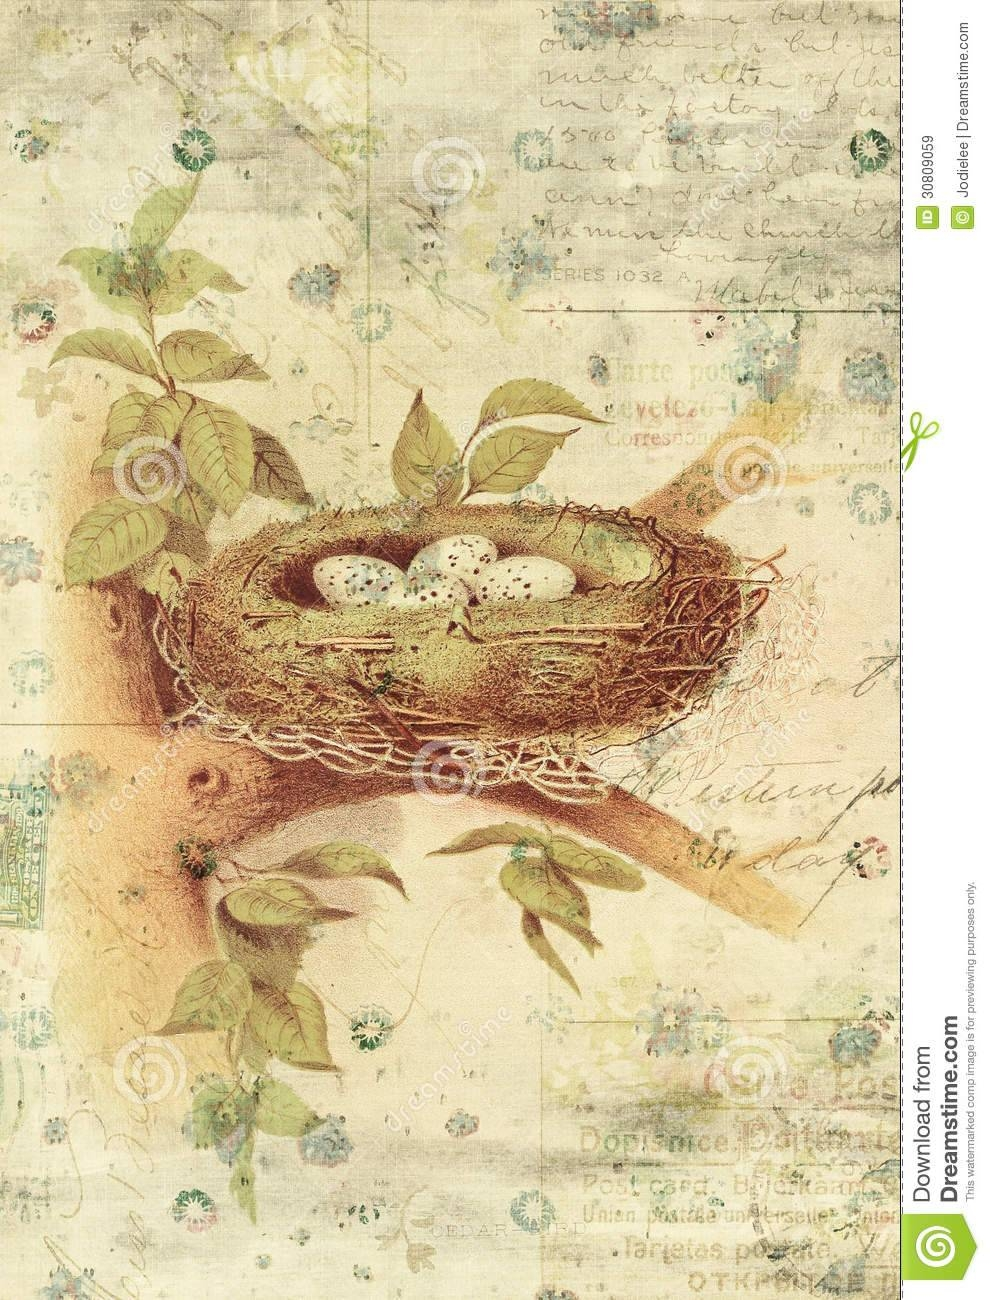 Nest And Bird Eggs Botanical Vintage Style Wall Art With Textured Intended For Most Recently Released Vintage Style Wall Art (View 12 of 20)